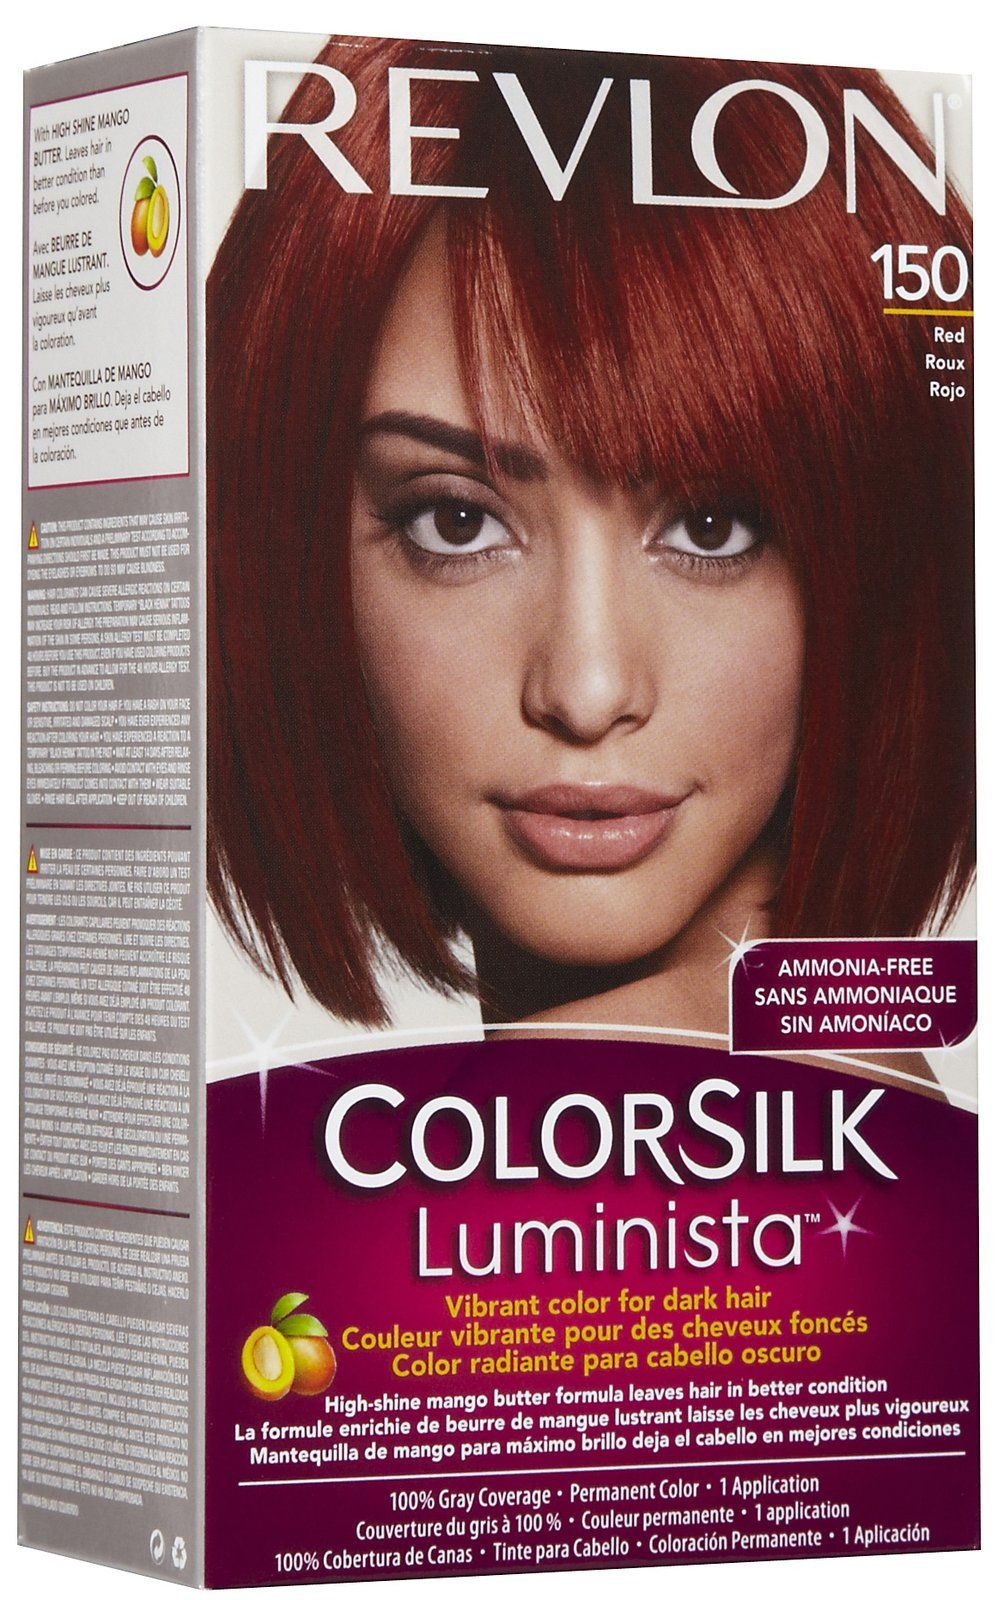 Revlon Colorsilk Luminista Permanent Hair Color, Light Red | Hair ...